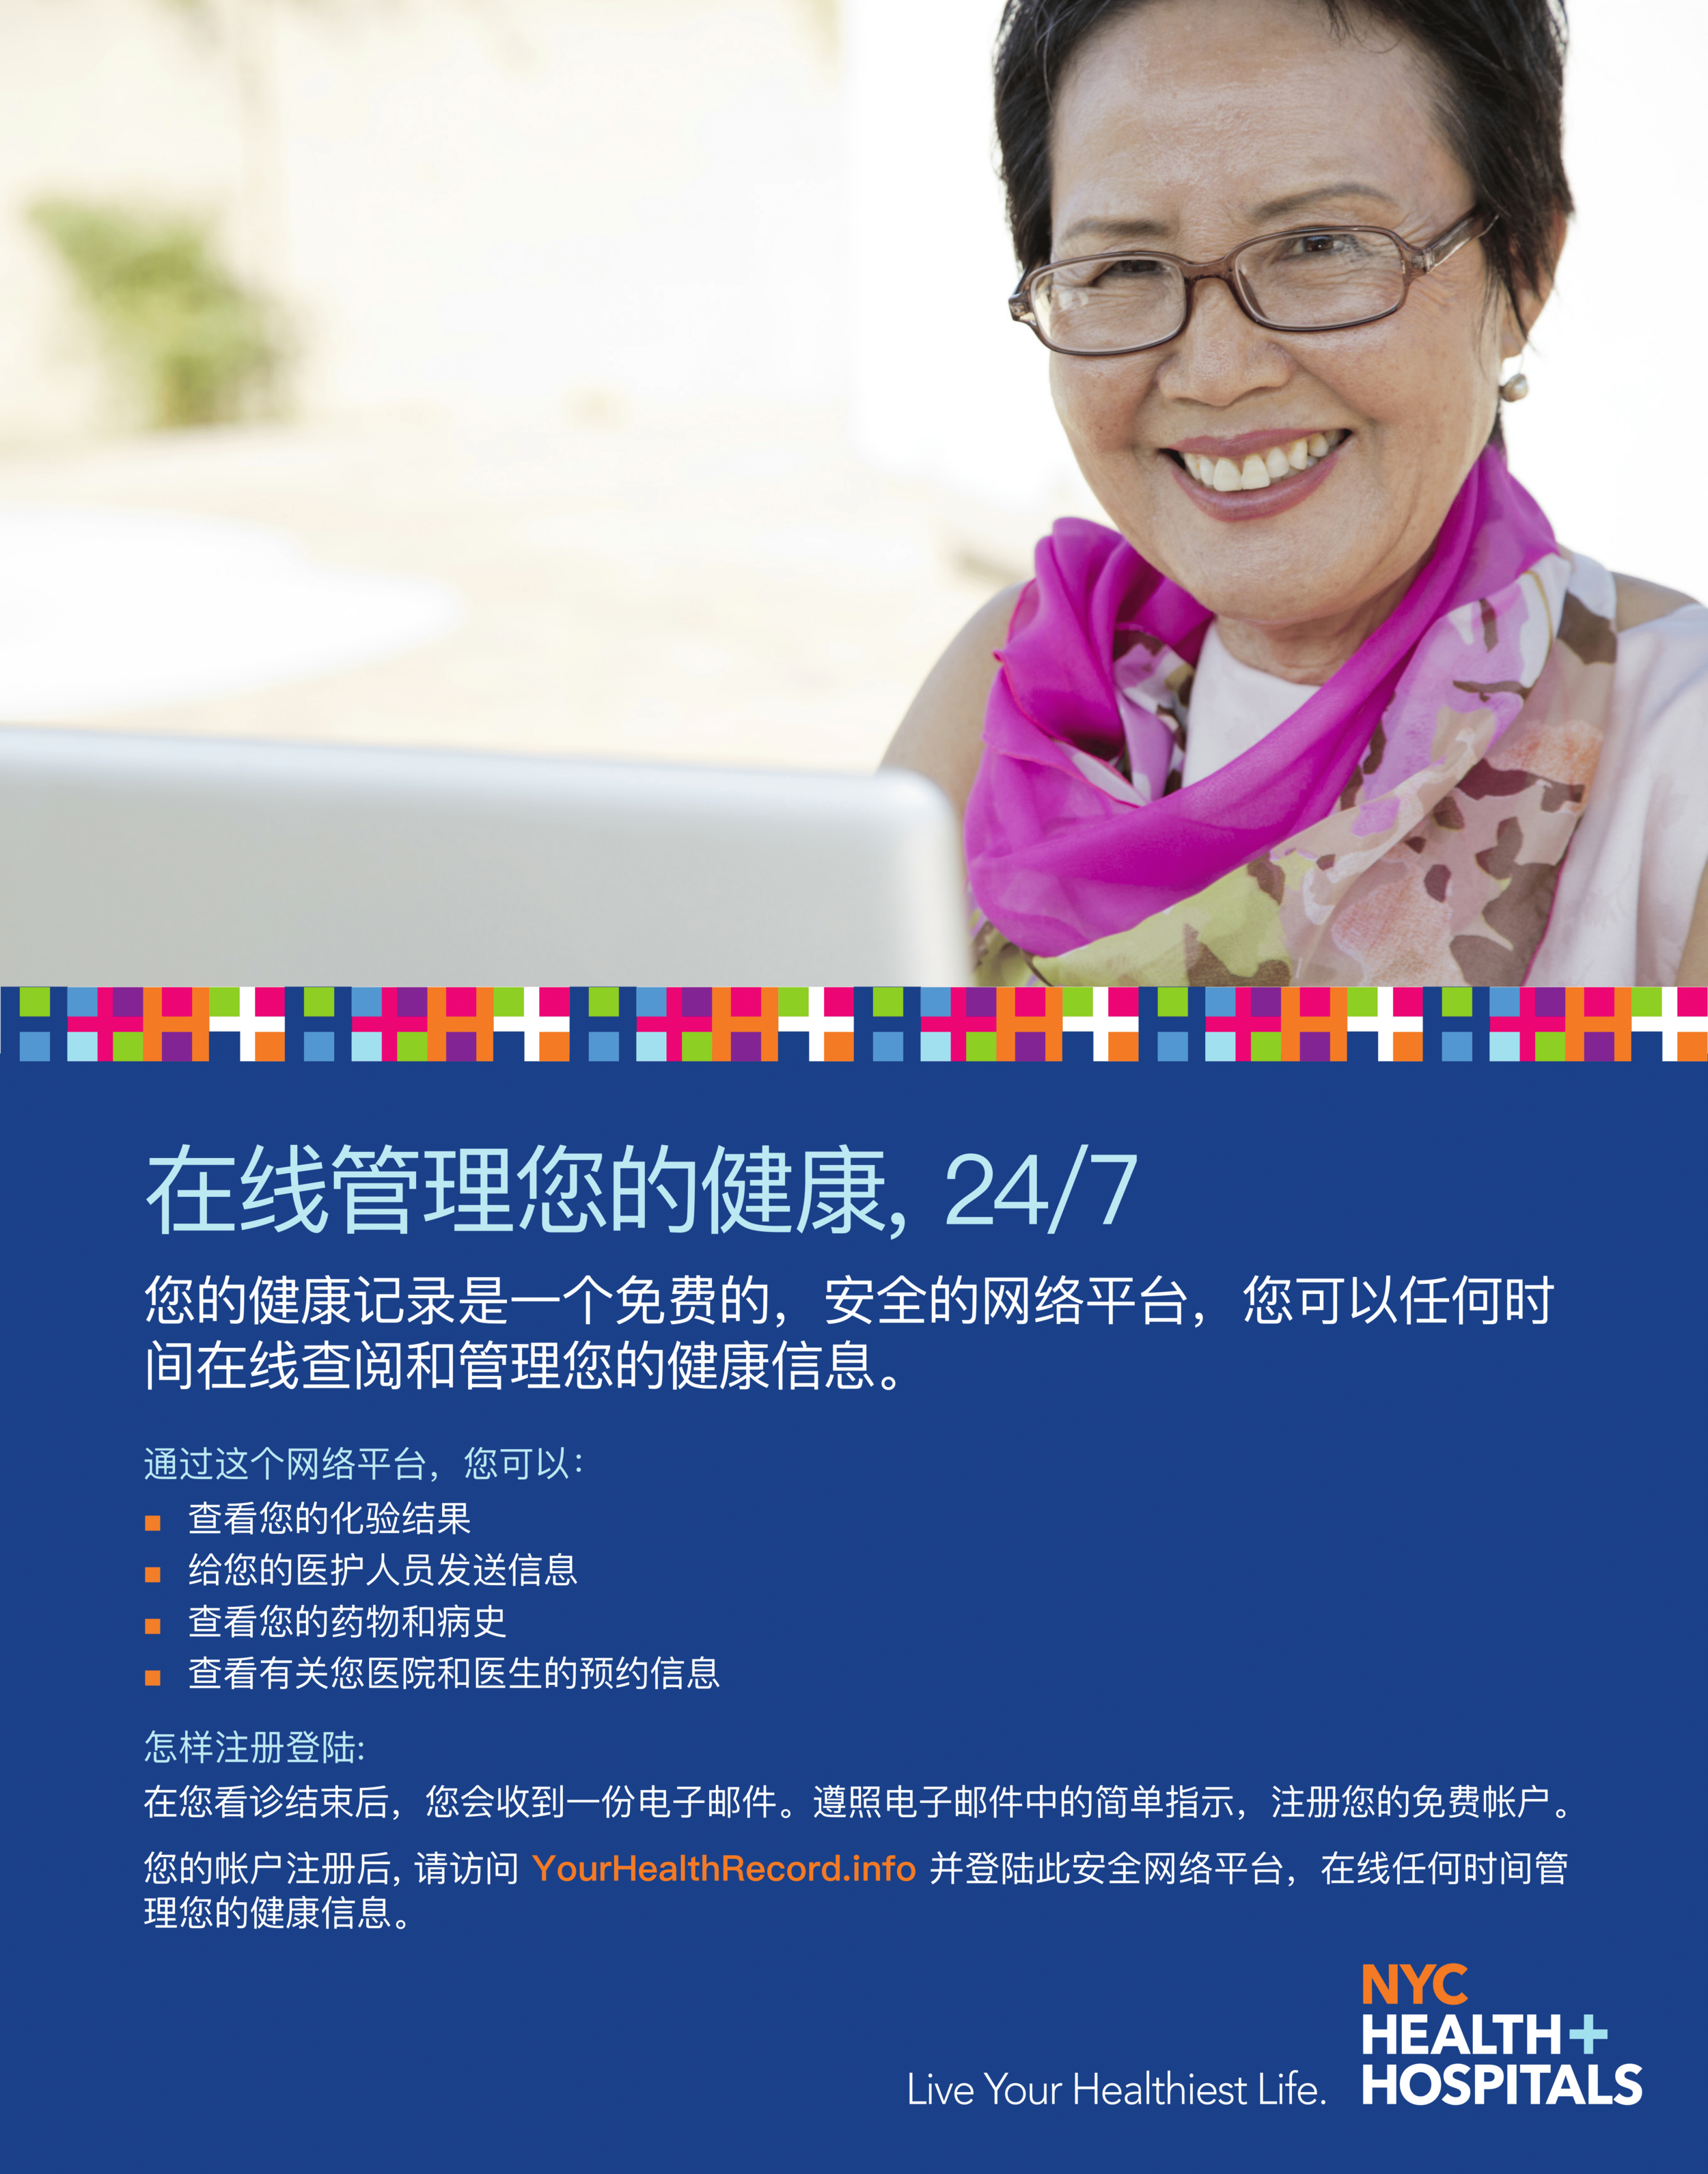 PatientPortal_Poster_Chinese-1.png